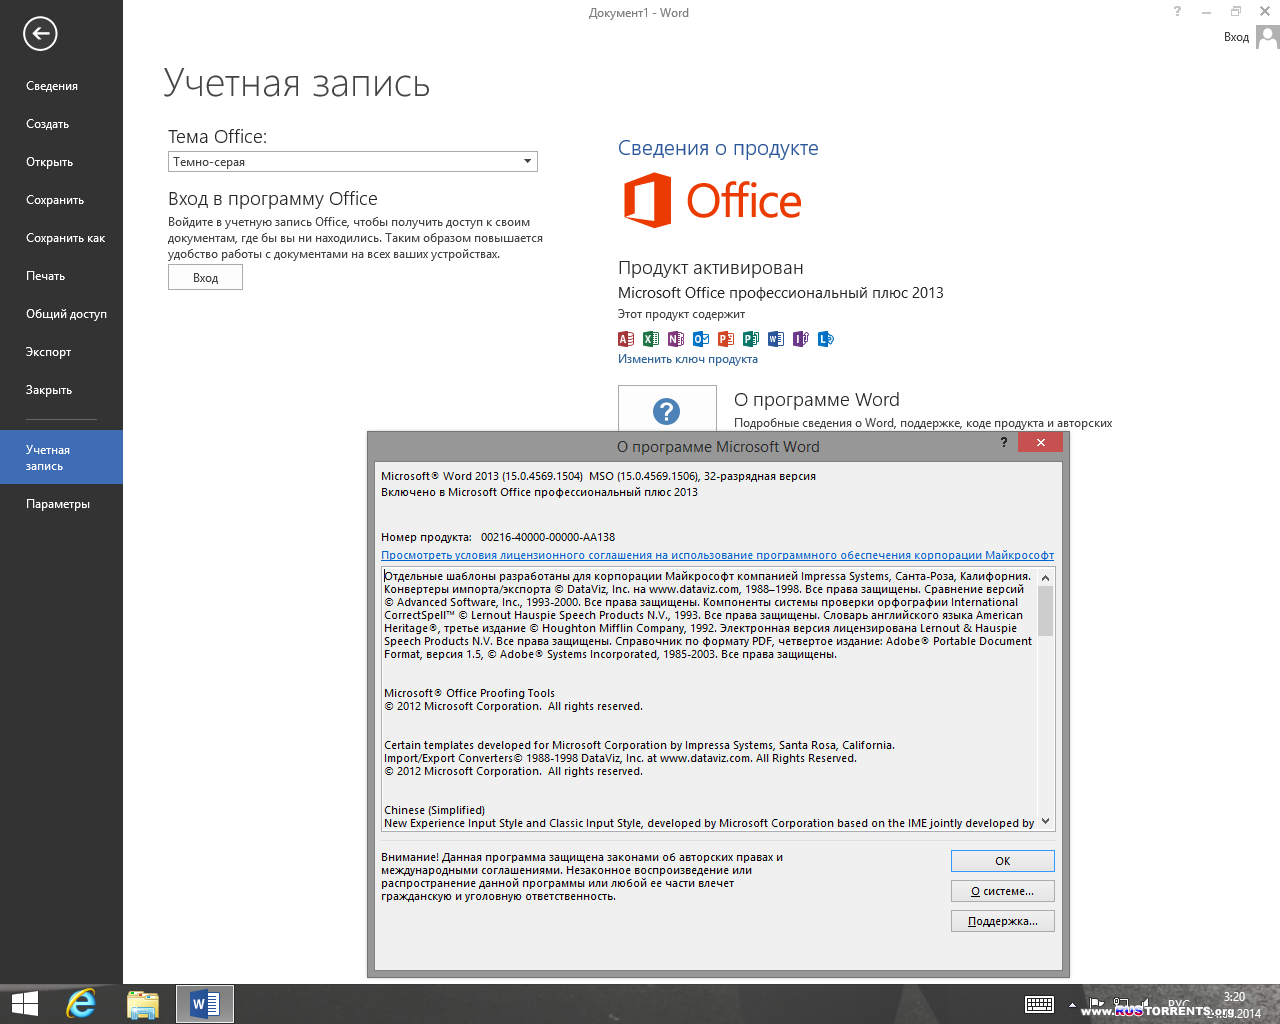 Microsoft Office Professional Plus/ Standard/ Project / Visio 2013 SP1 15.0.4569.1506 RePack by Krokoz